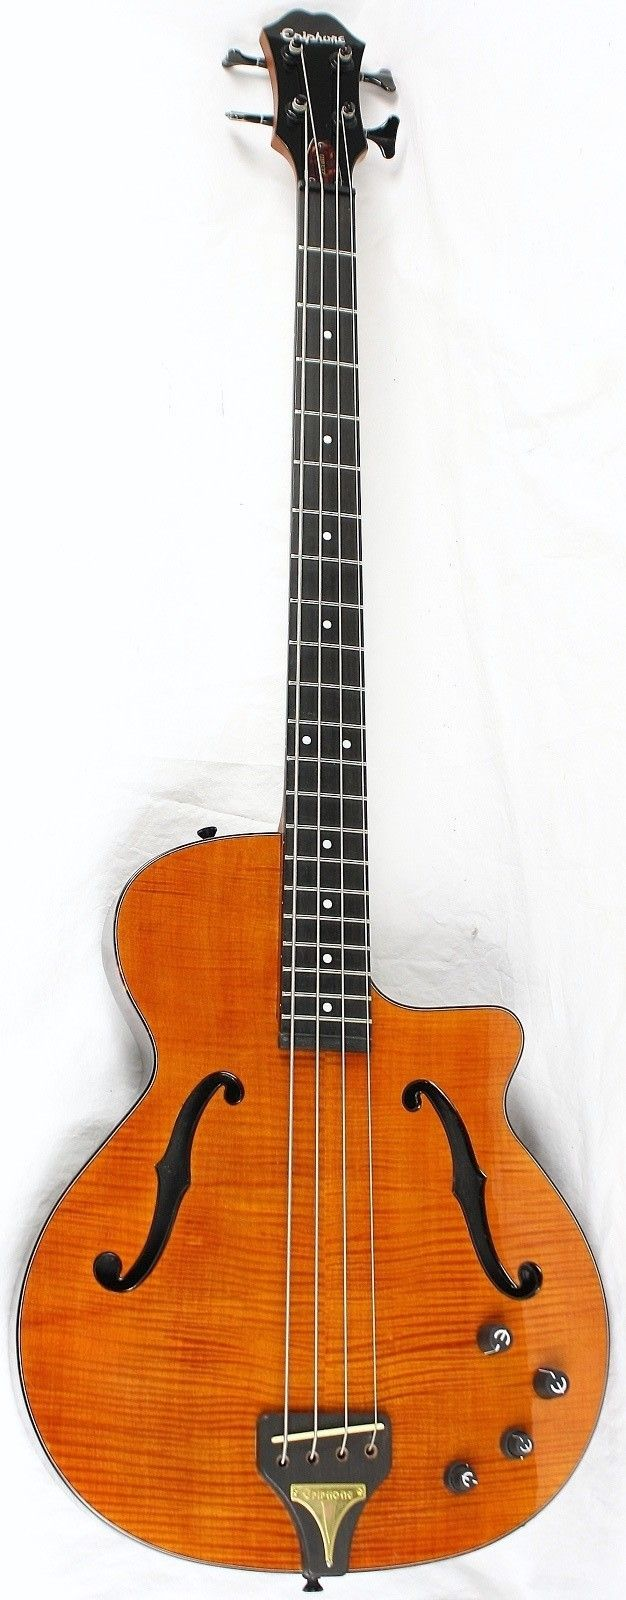 frettedchordophones: Epiphone Zenith Acoustic Bass Guitar (with ƒ holes) =Lardys Chordophone of the day - a year ago =Lardys Chordophone of the day - 2 years ago --- https://www.pinterest.com/lardyfatboy/